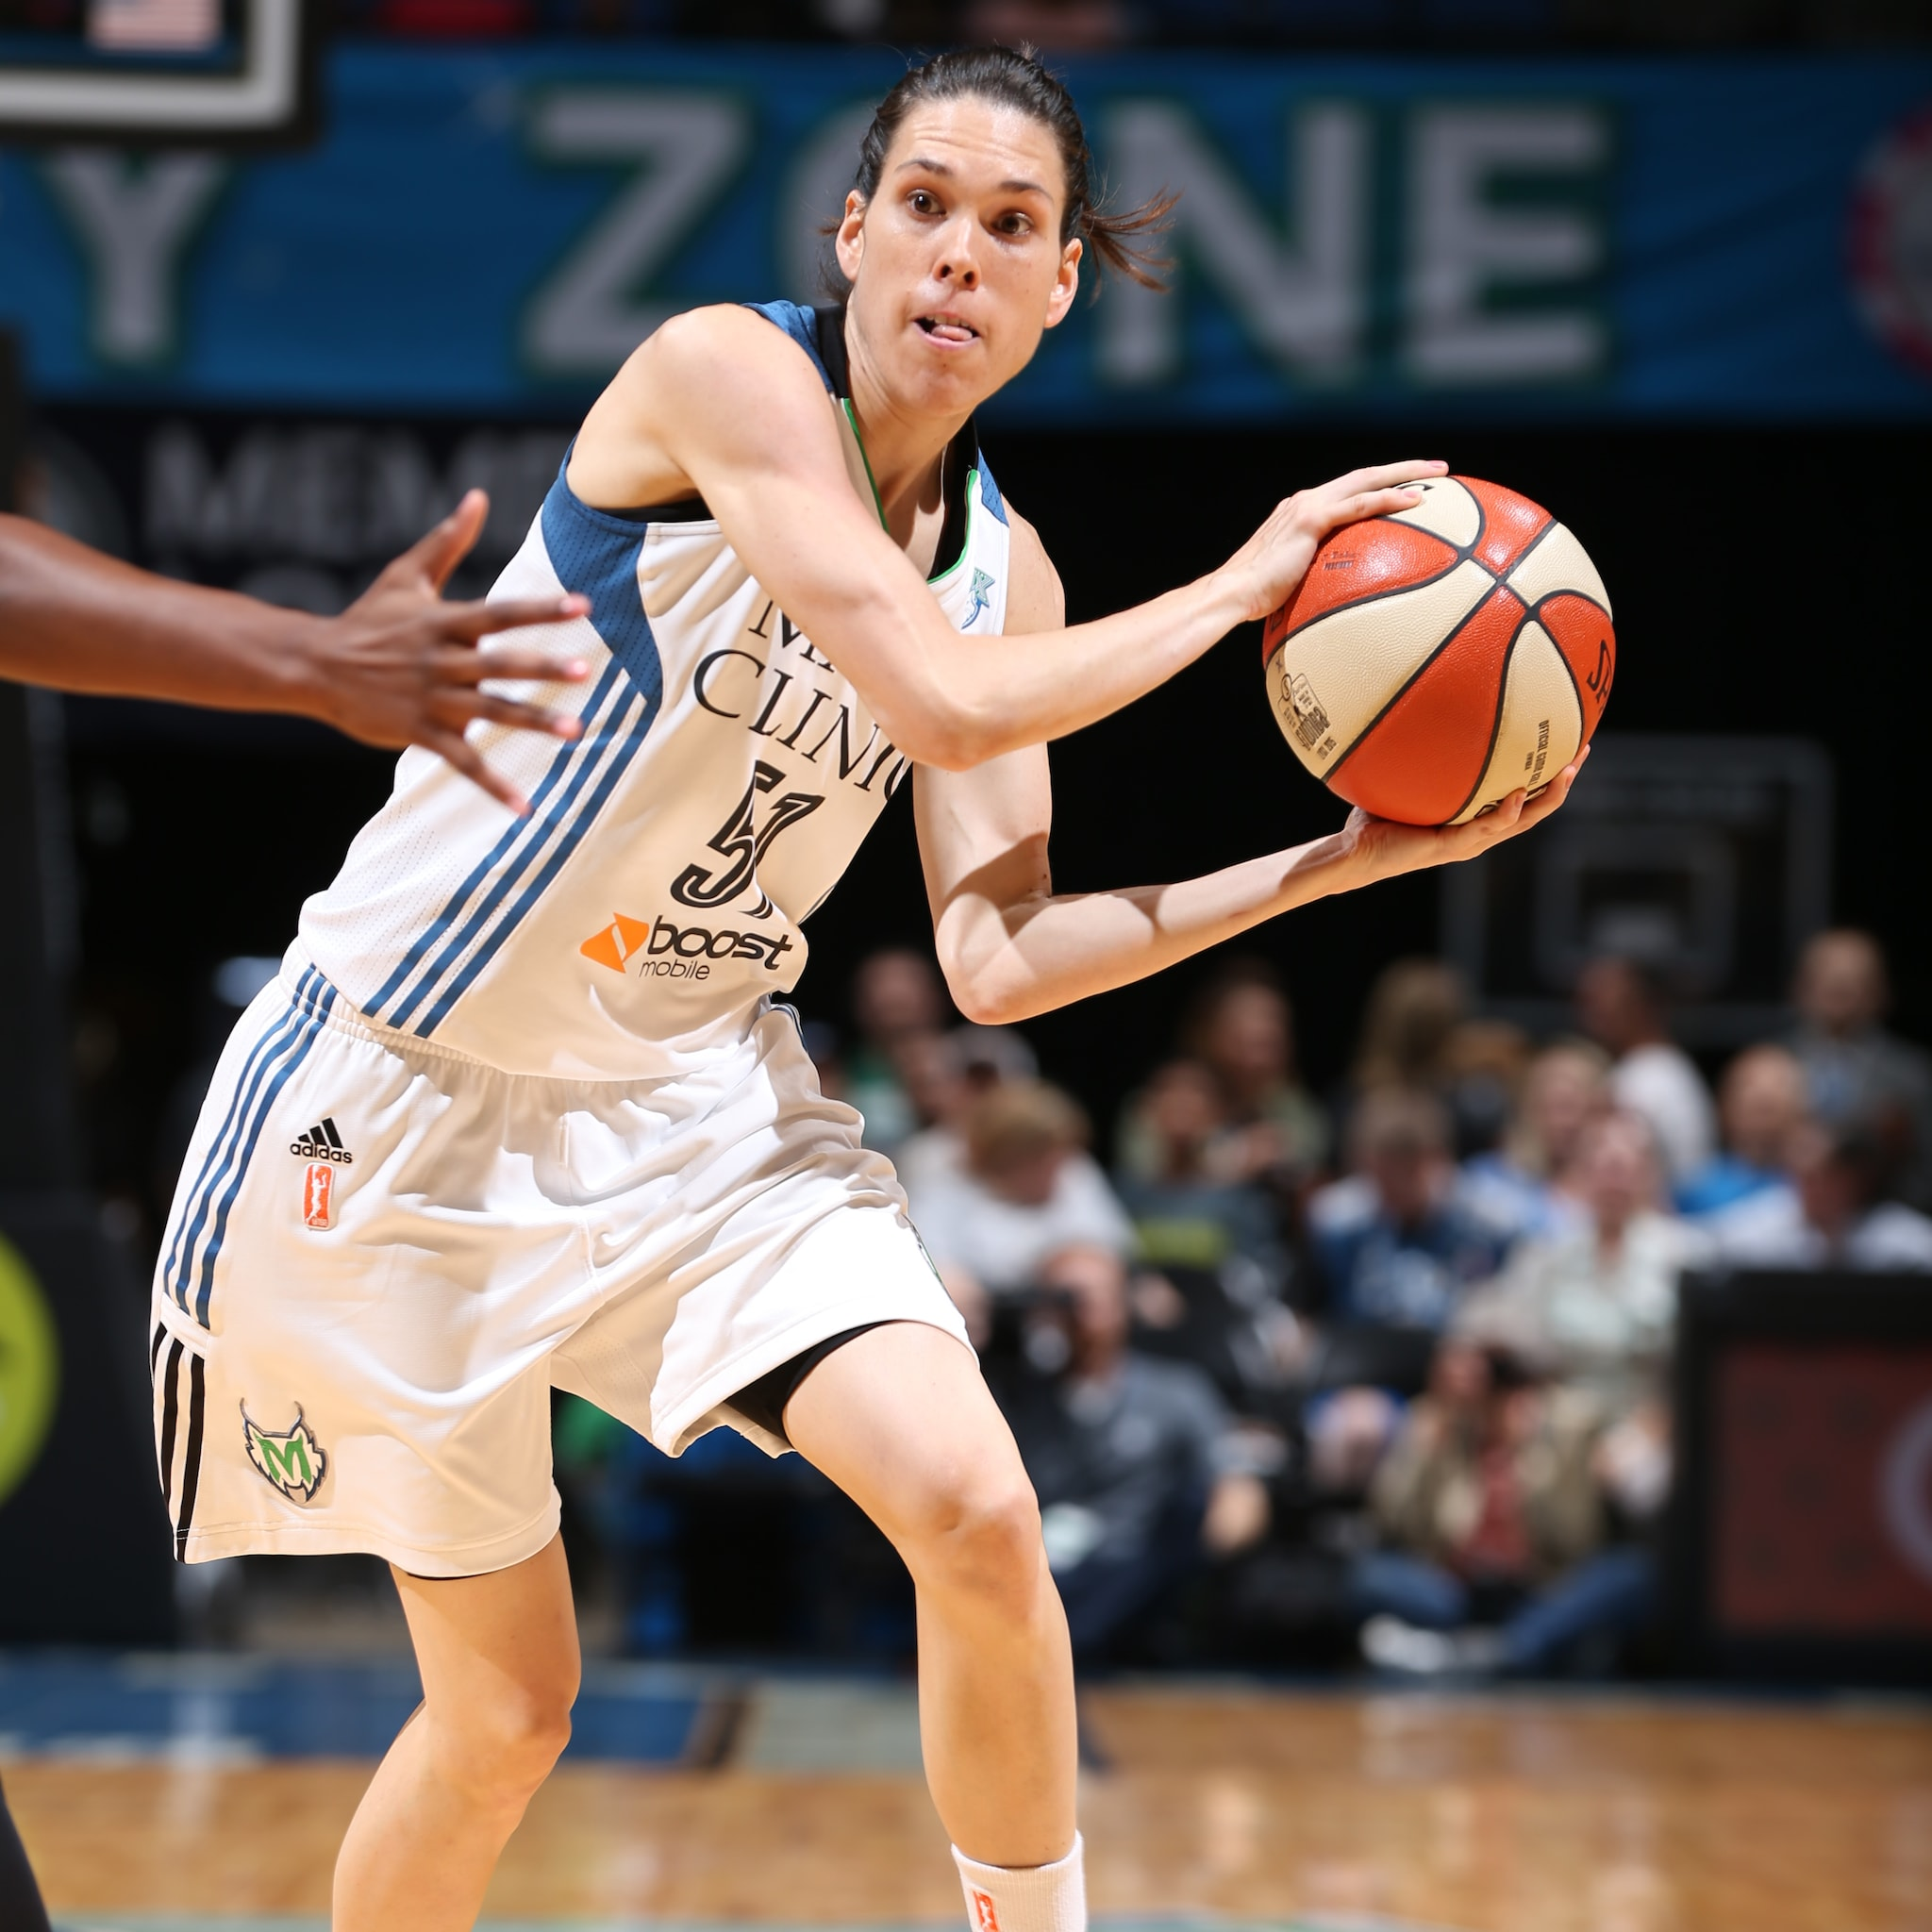 All five Lynx starters scored in double-figures on Friday night, and that included guard Anna Cruz. Cruz played great defense once again while finishing with 12 points, four rebounds and six assists in the Lynx win.